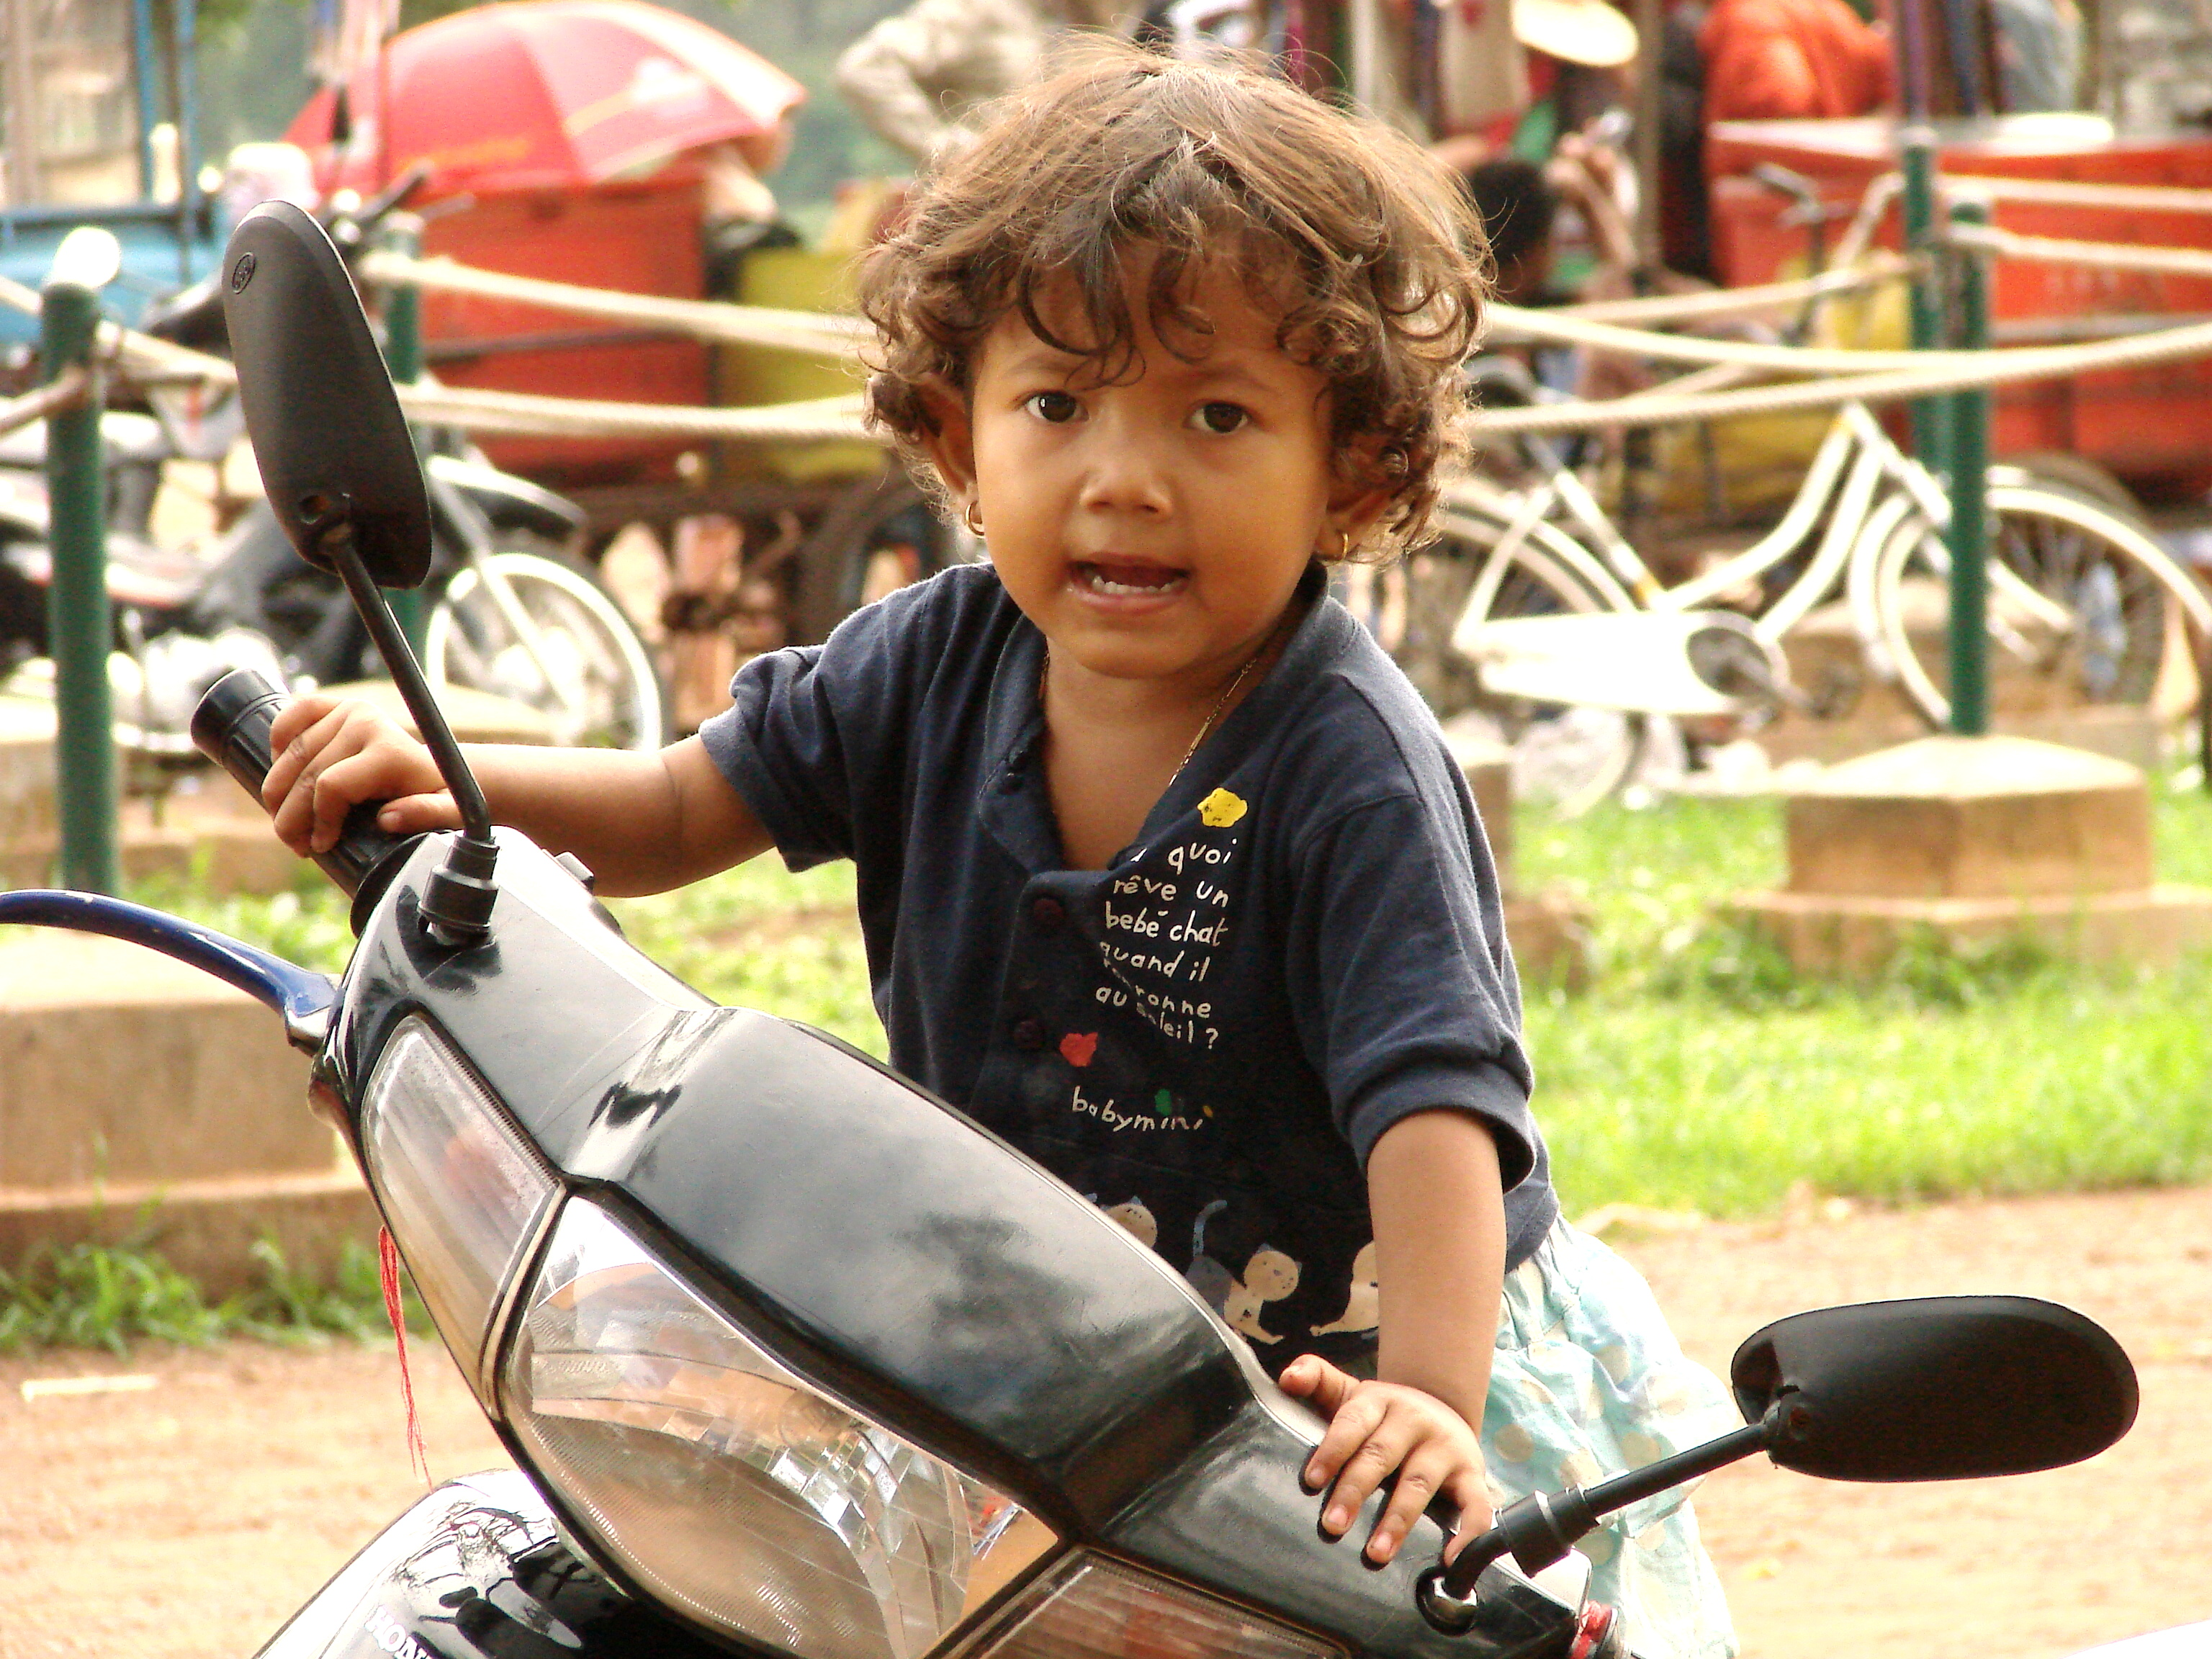 Cambodia child File:Cambodian Child - Angkor.JPG